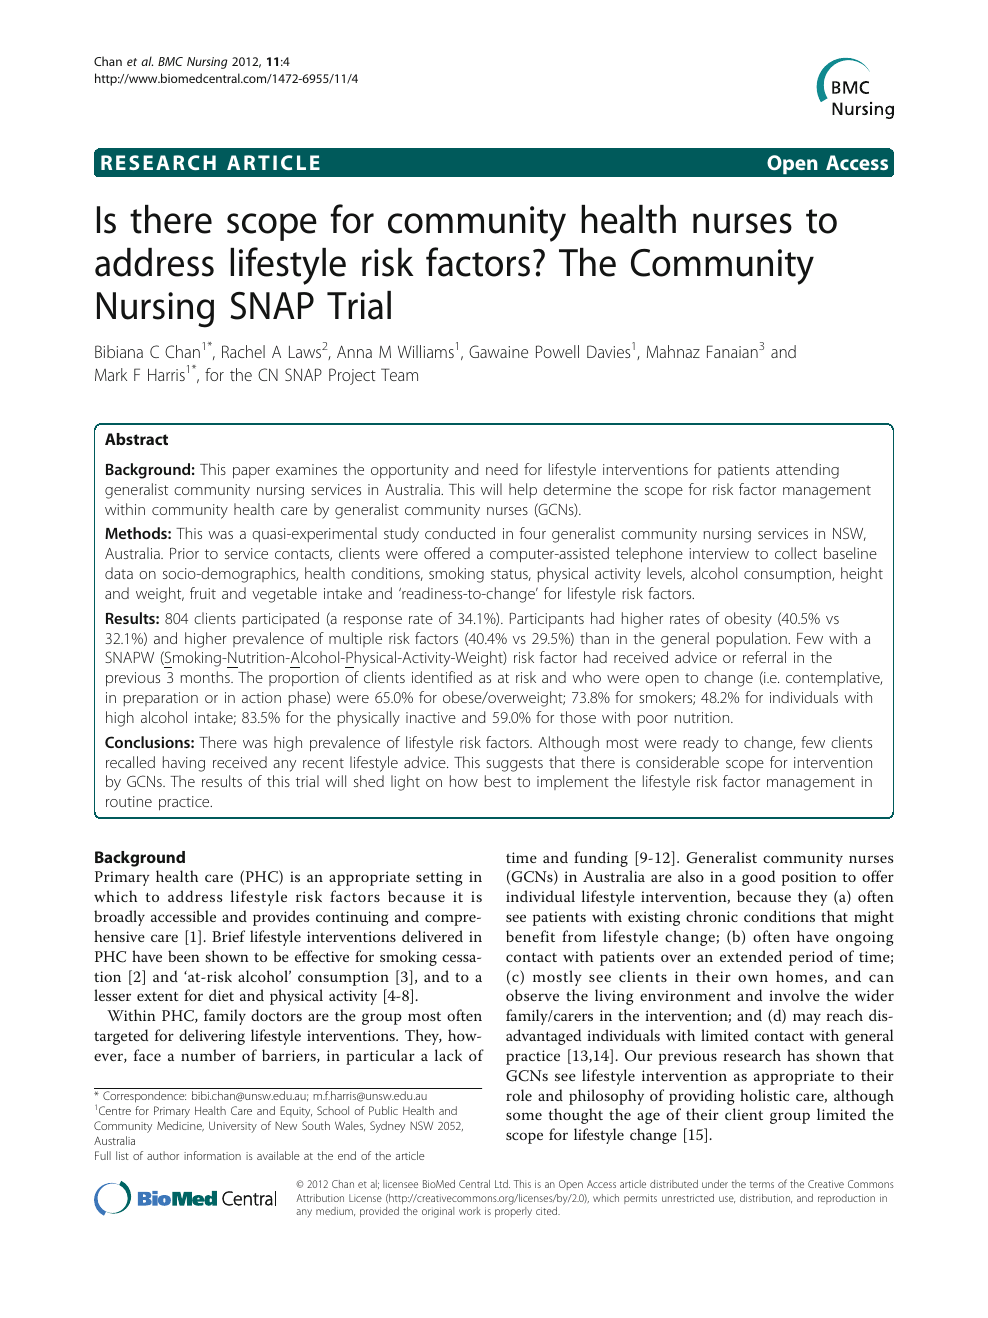 Is There Scope For Community Health Nurses To Address Lifestyle Risk Factors The Community Nursing Snap Trial Topic Of Research Paper In Health Sciences Download Scholarly Article Pdf And Read For